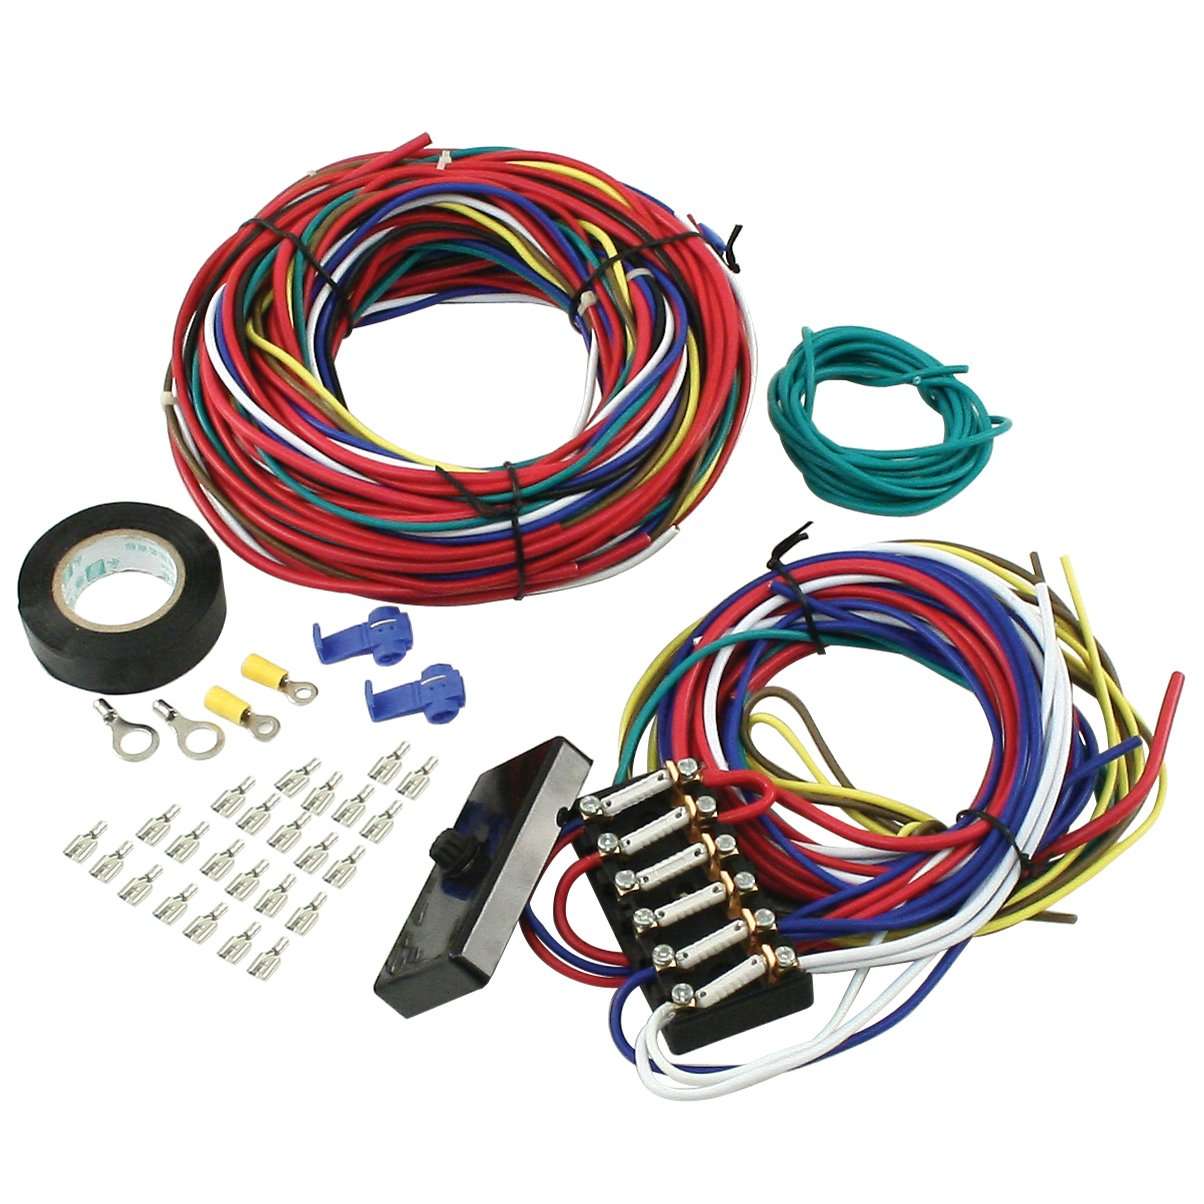 712Fyt3MSiL._SL1204_ amazon com empi 00 9466 0 wire loom kit, vw buggy, sand rail vw wiring harness at crackthecode.co